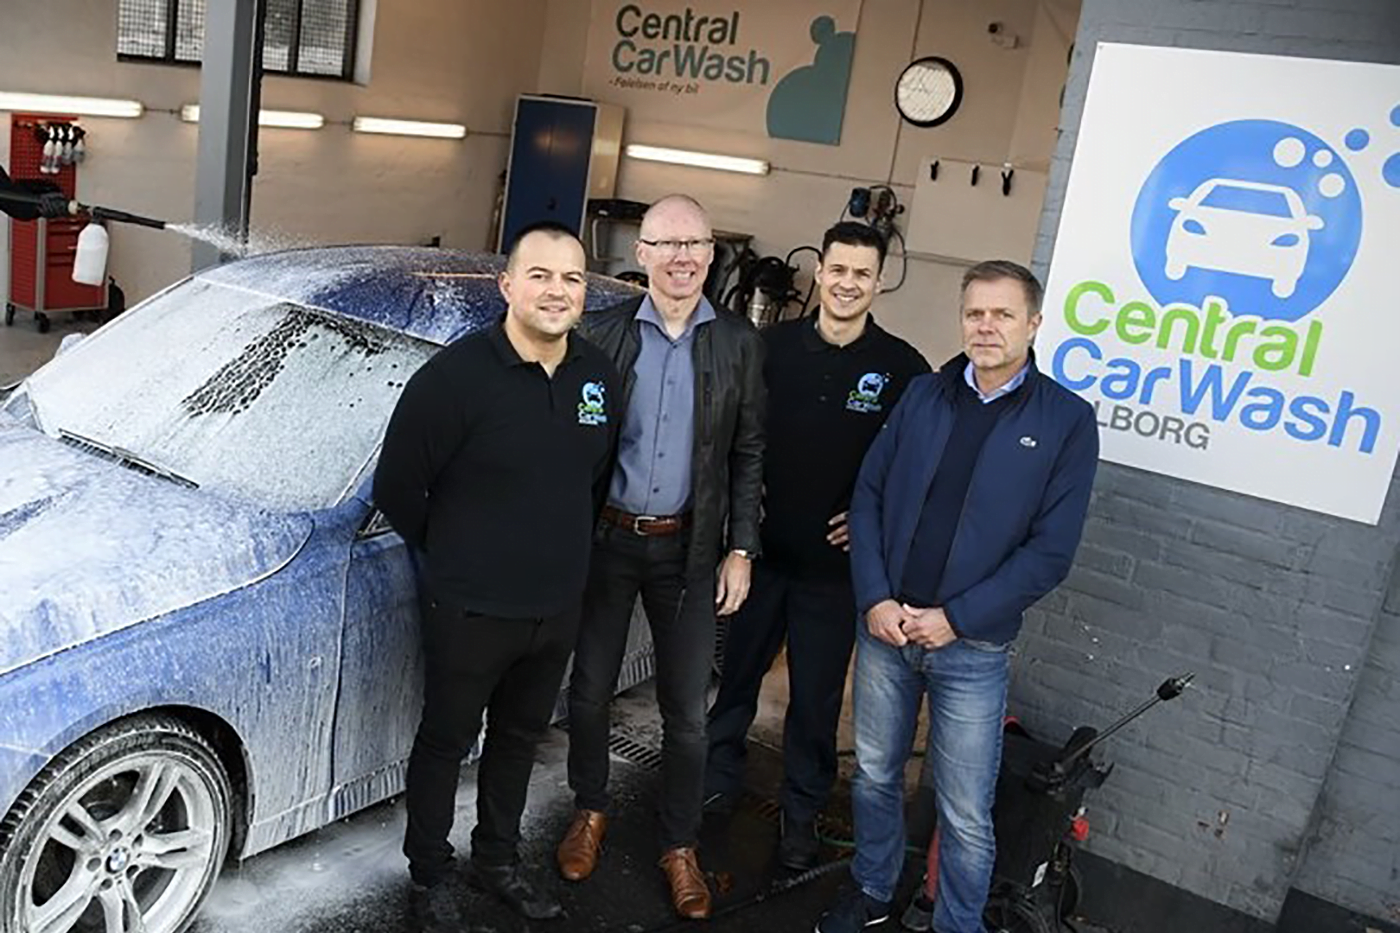 Central Carwash_beskåret